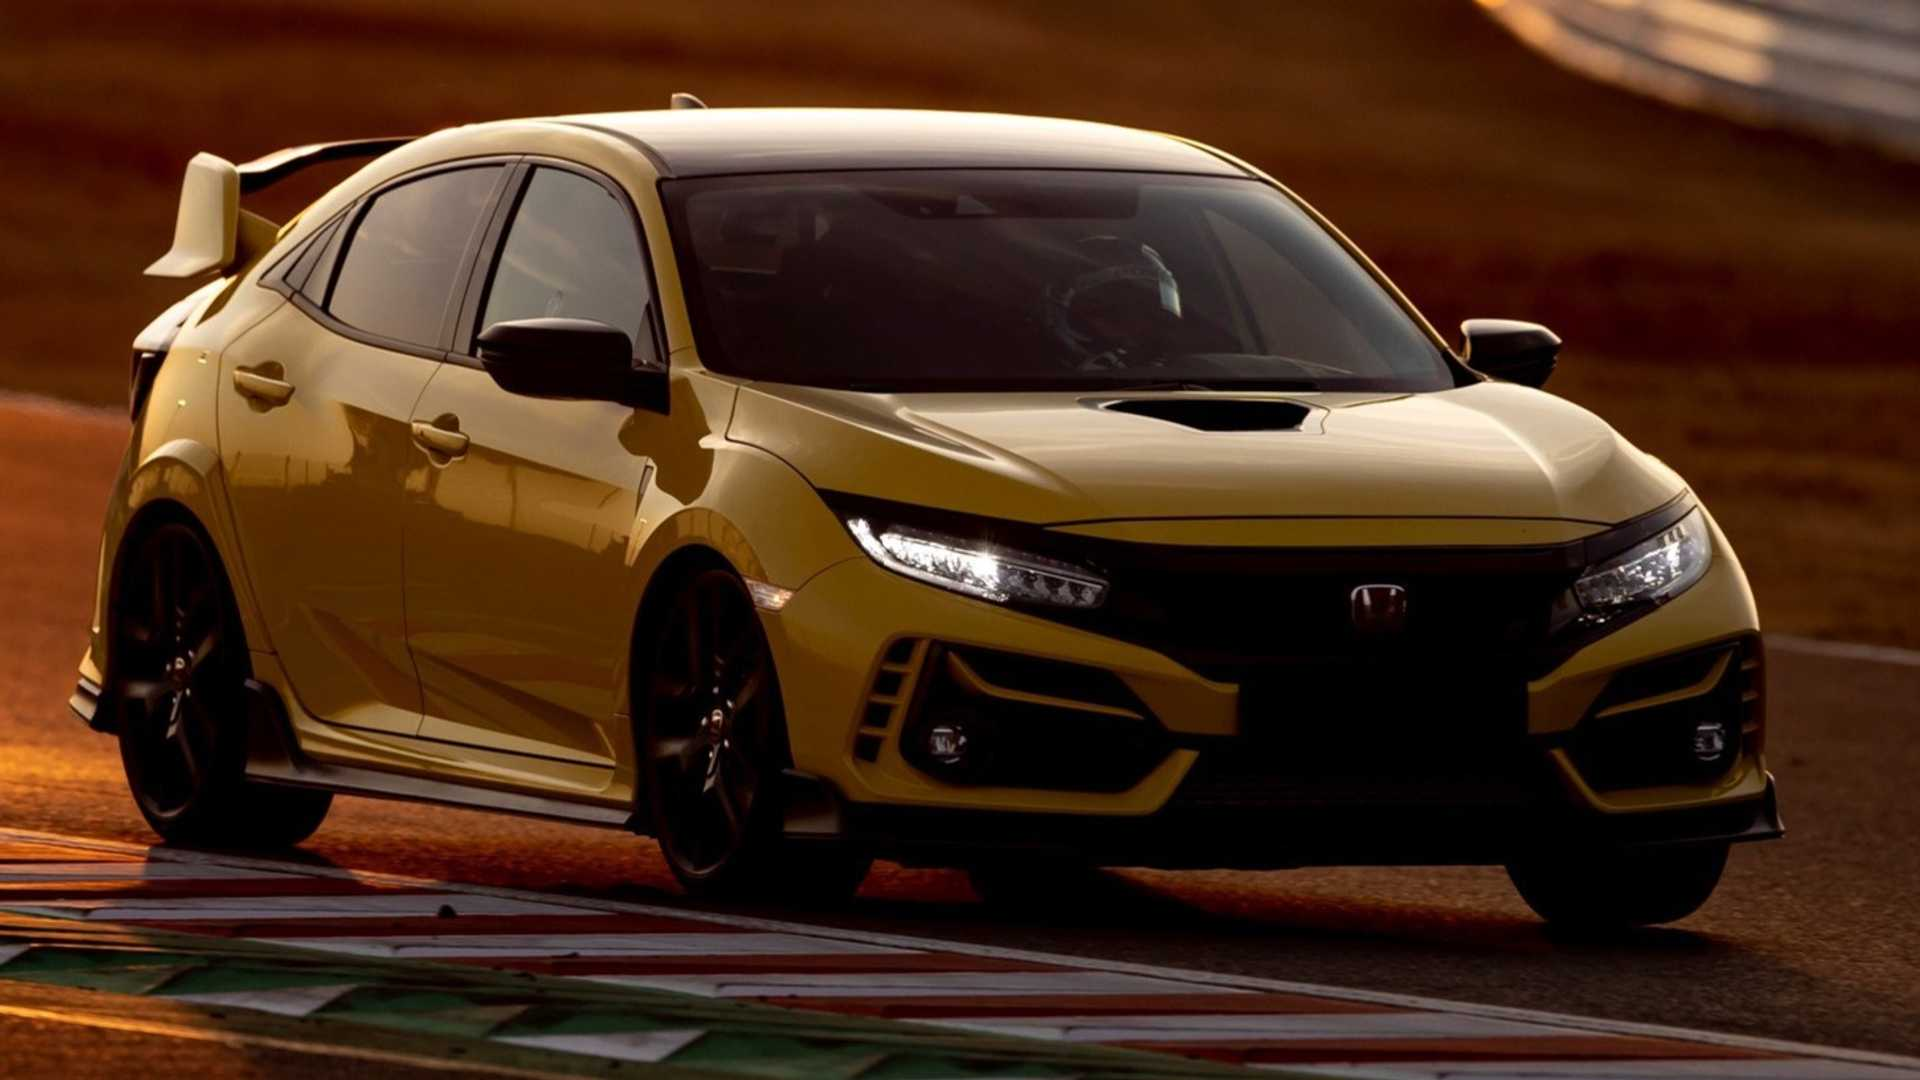 2017 - [Honda] Civic Hatchback [X] - Page 11 Honda-civic-type-r-limited-edition-sets-new-fwd-record-at-suzuka